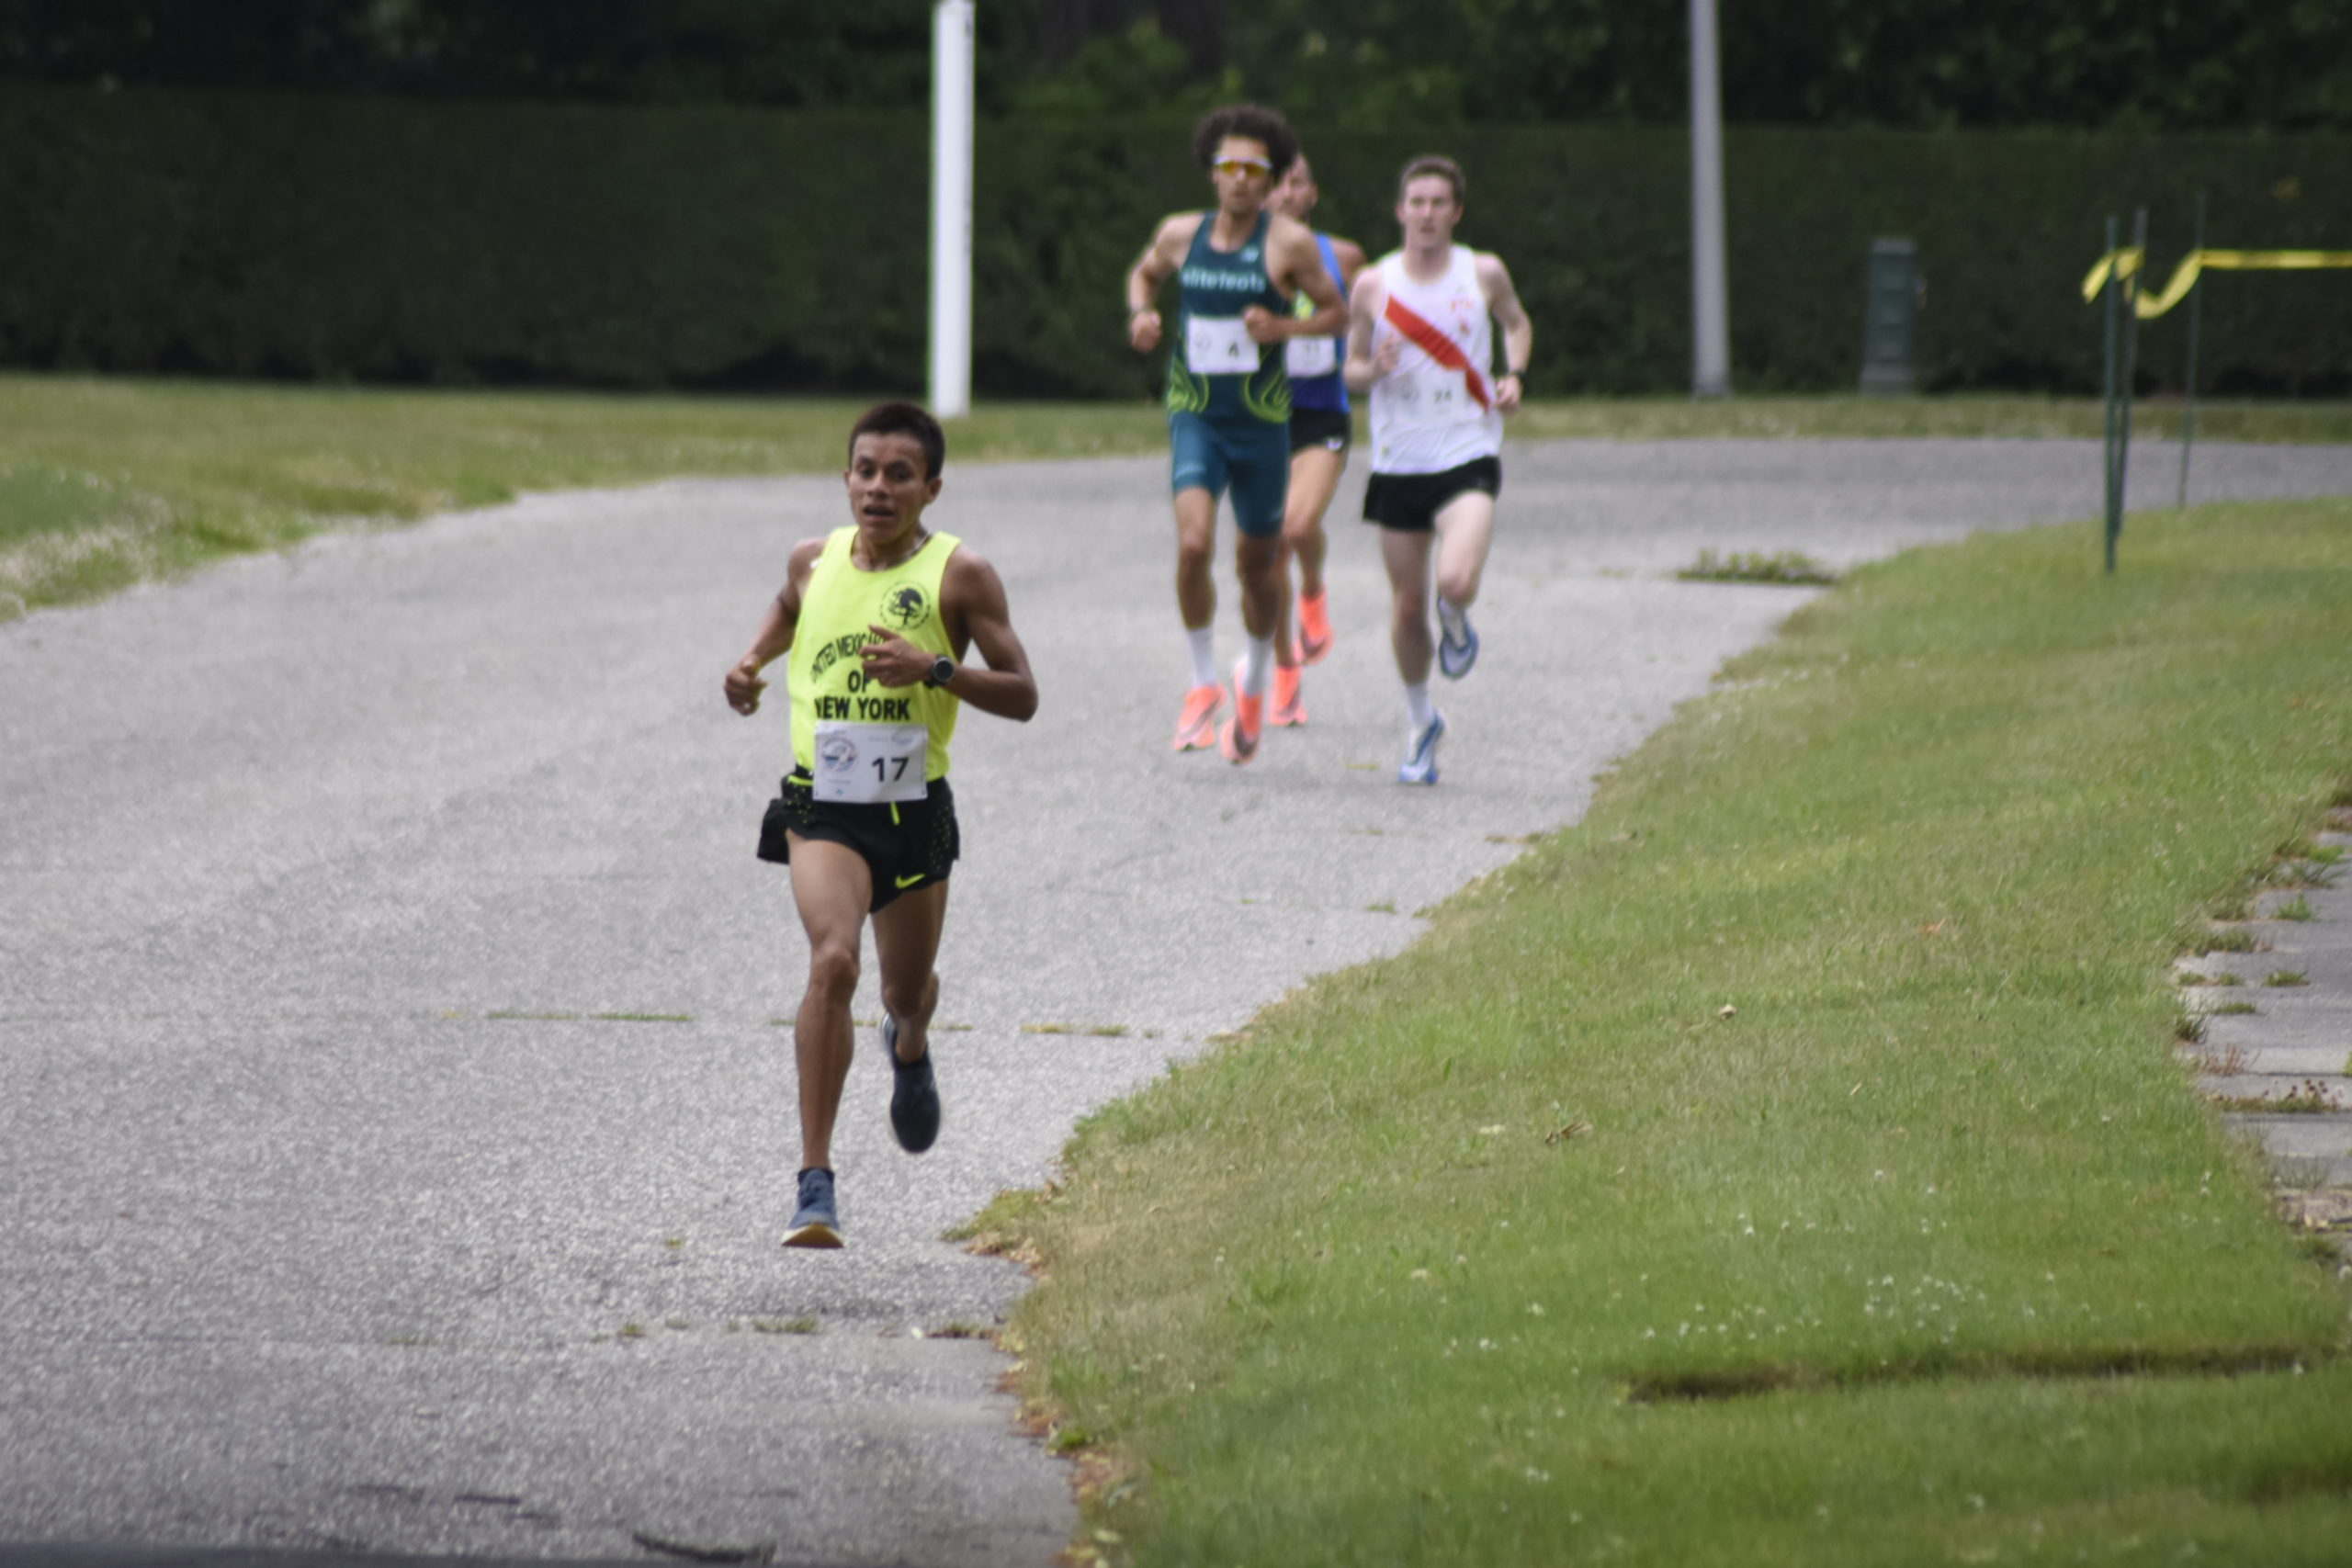 Patricio Castillo broke away from the pack a few times on Saturday but ultimately placed second overall in the 10K.